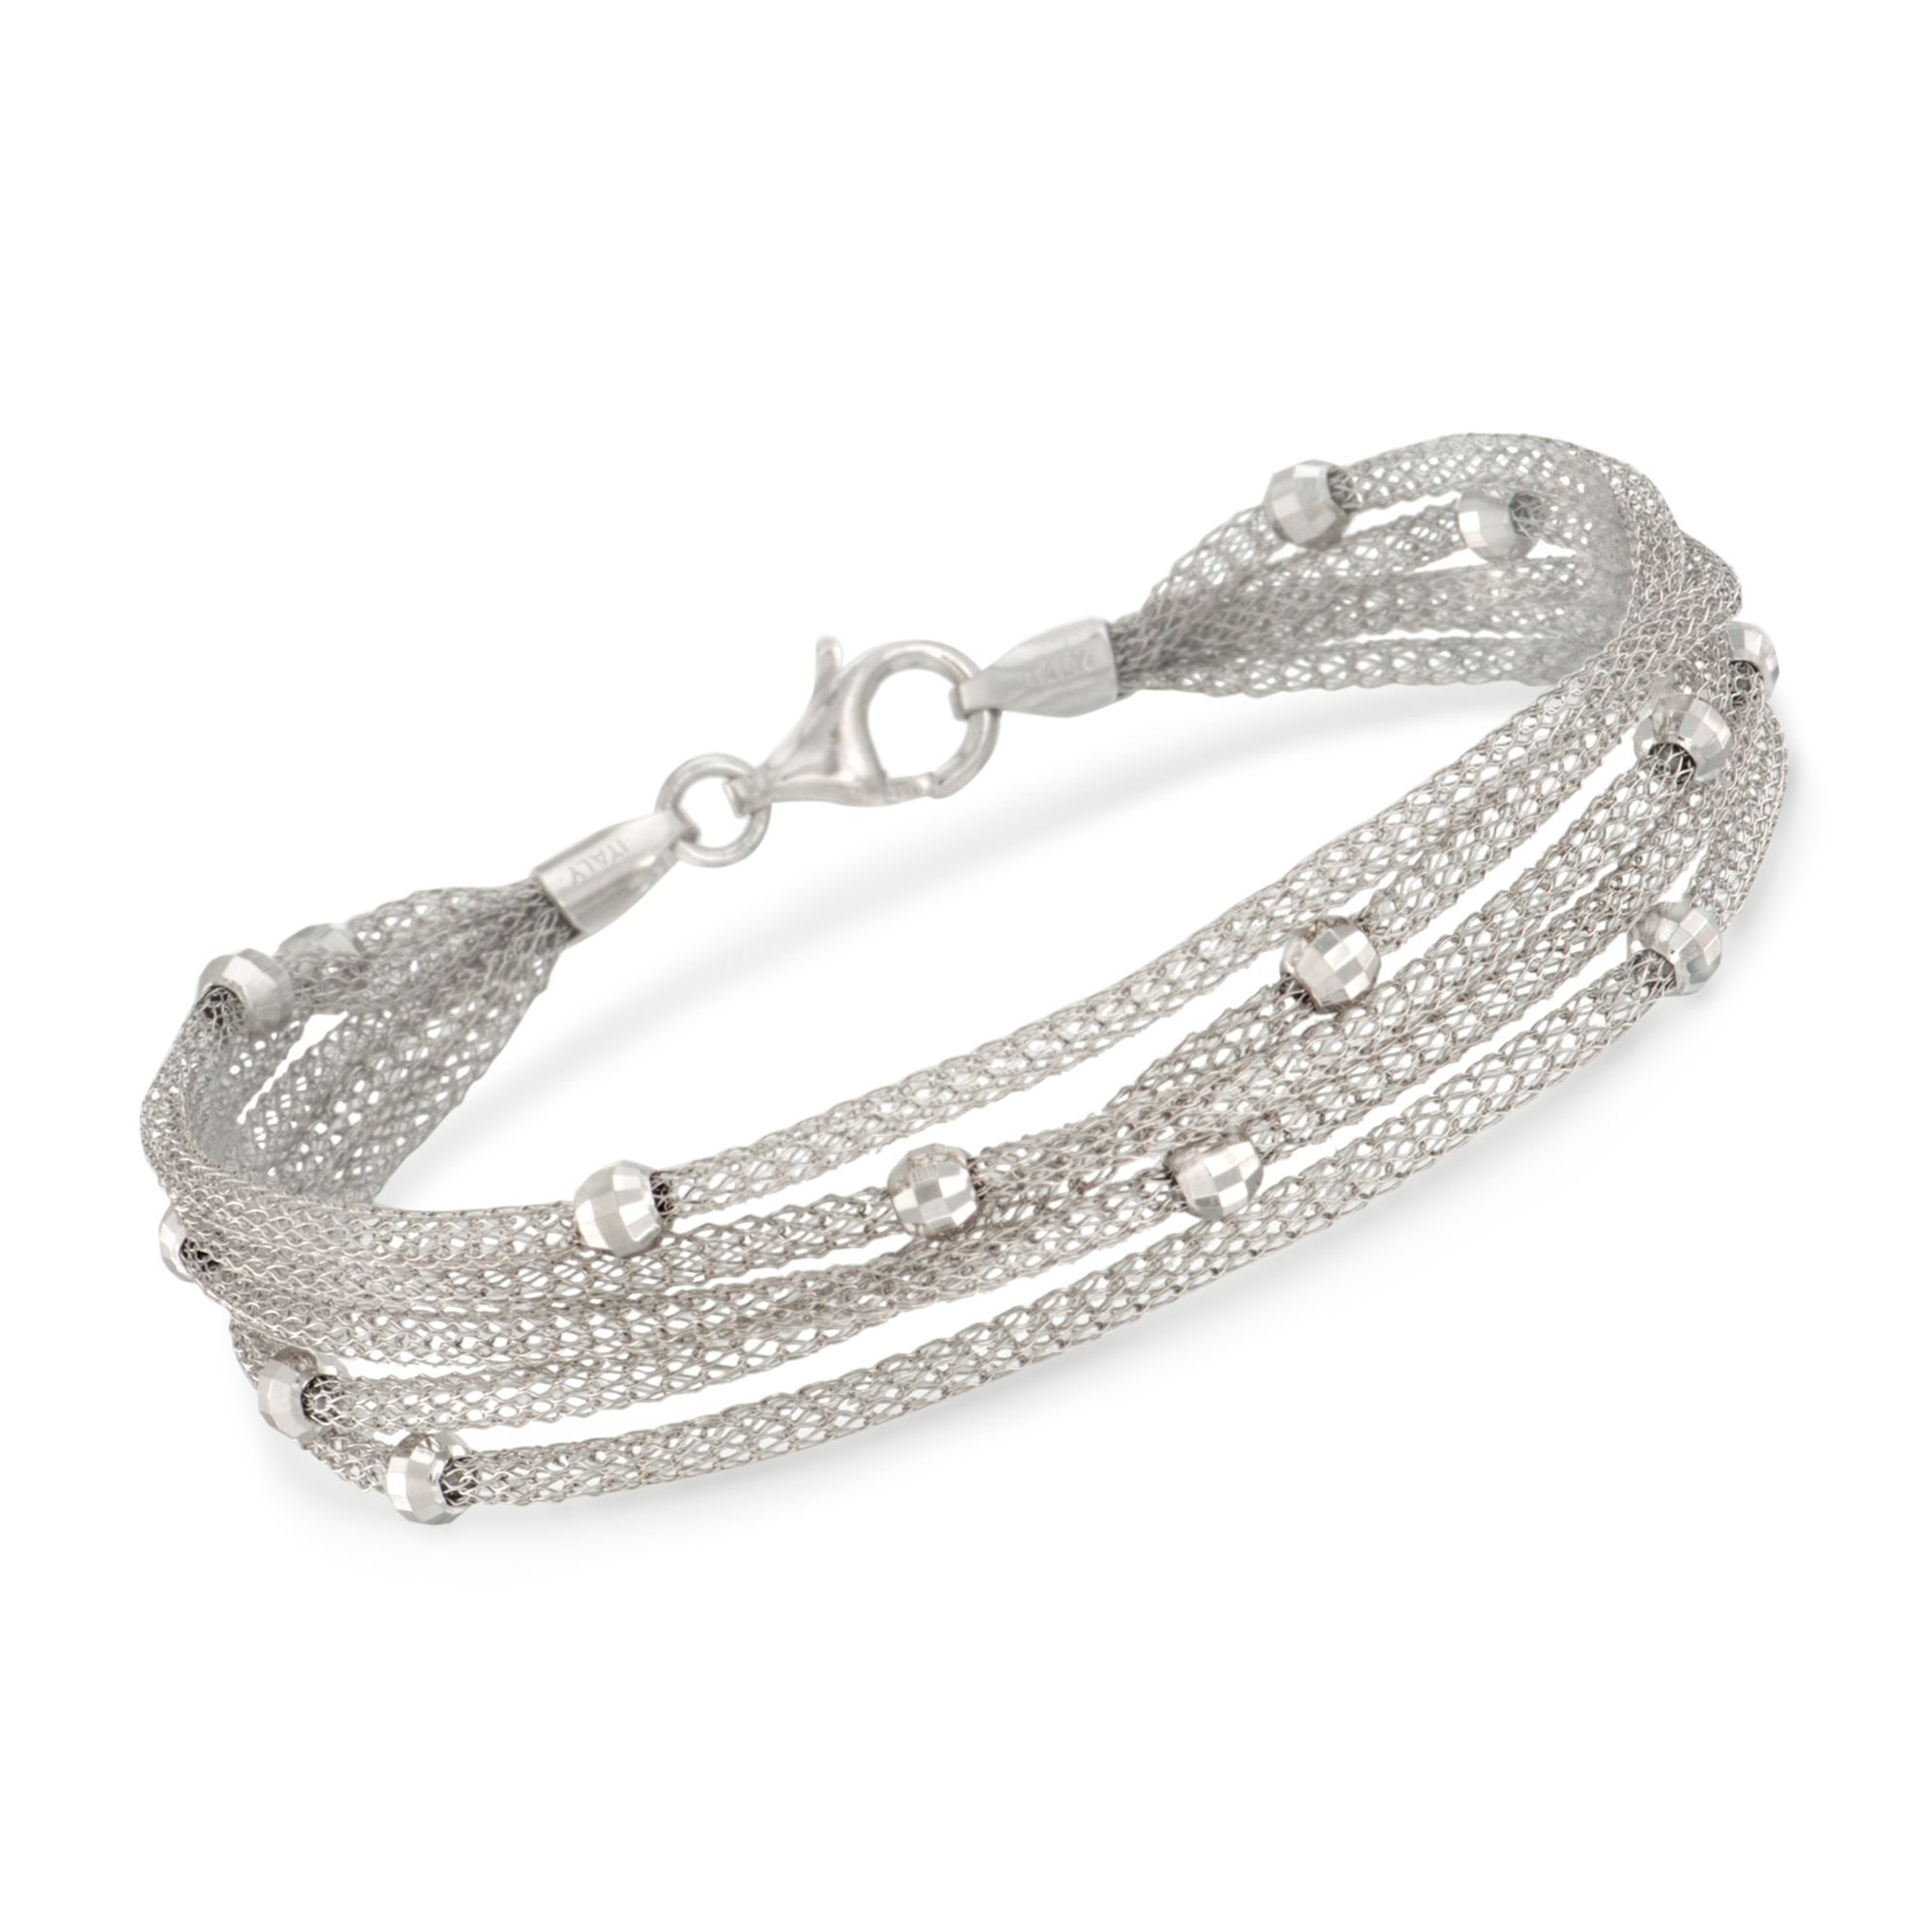 Ross-Simons Italian Sterling Silver 5-Strand Beaded Mesh Bracelet by Ross-Simons